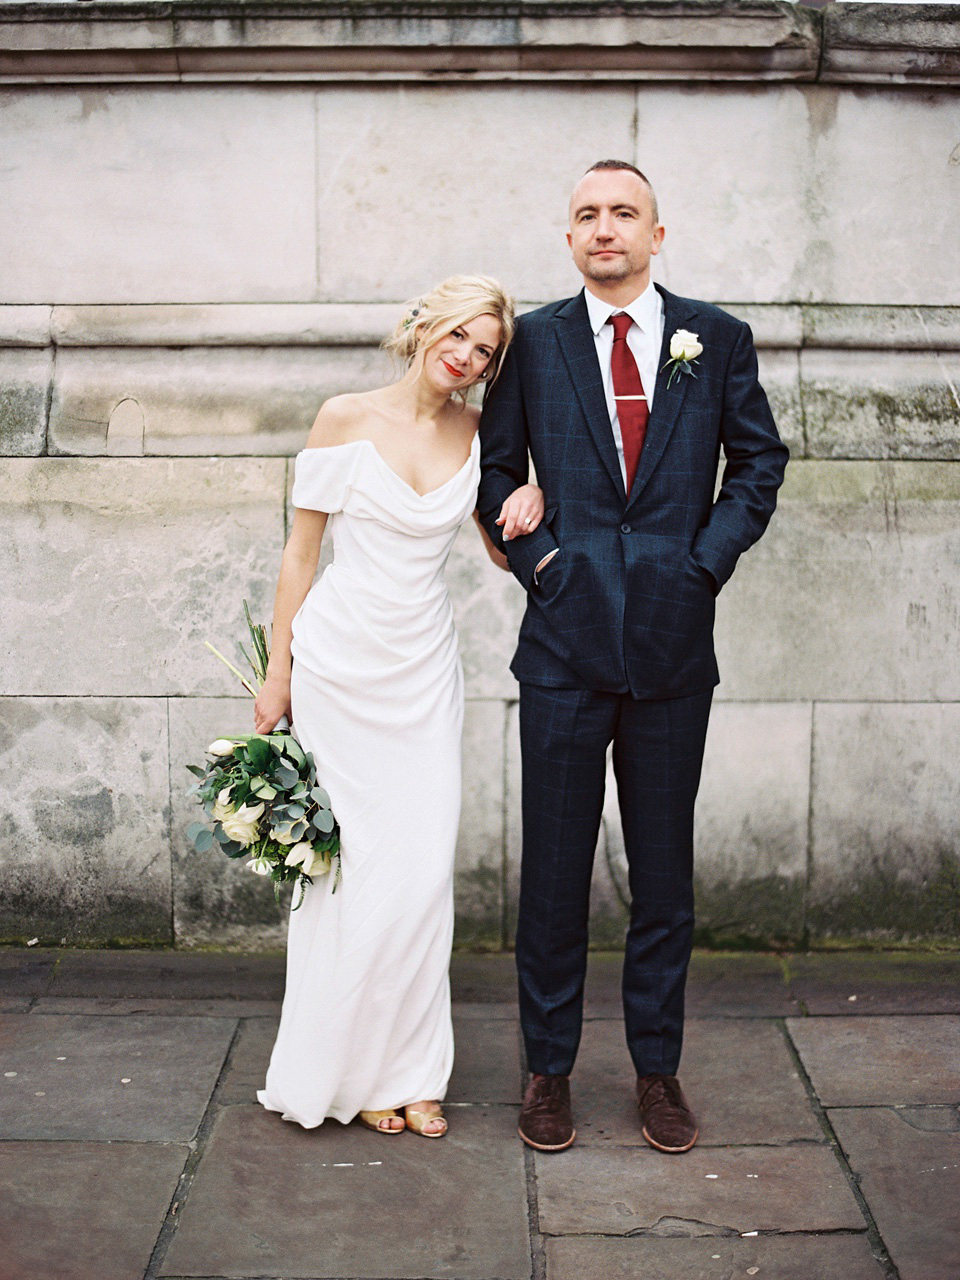 Vivenne Westwood Wedding Dresses.Vivienne Westwood And Bridesmaids In Jumpsuits For A Colourful